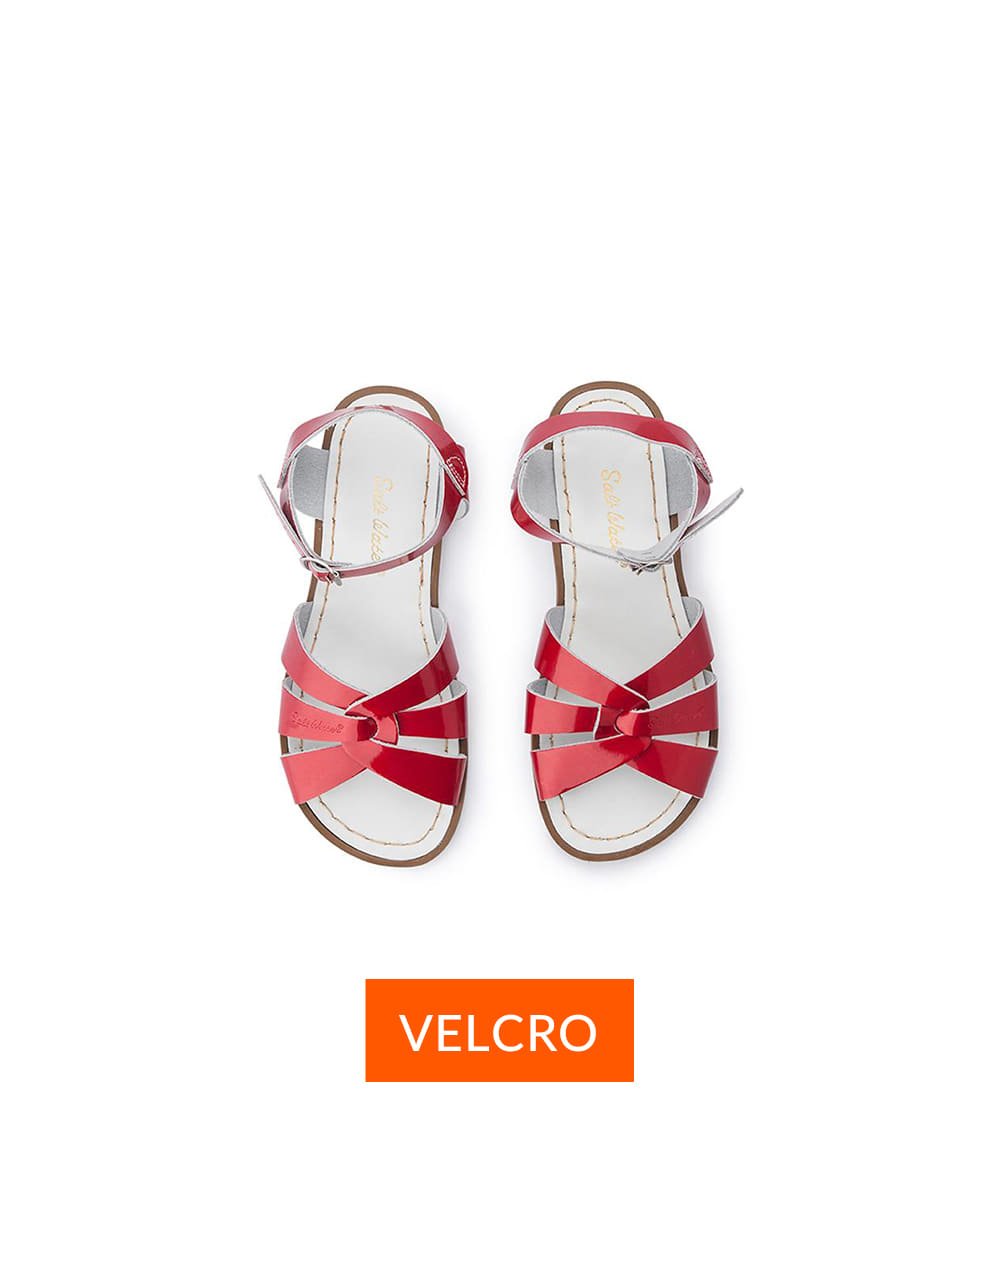 SALT-WATER SANDAL  CHILD VELCRO ORIGINAL  Candy red